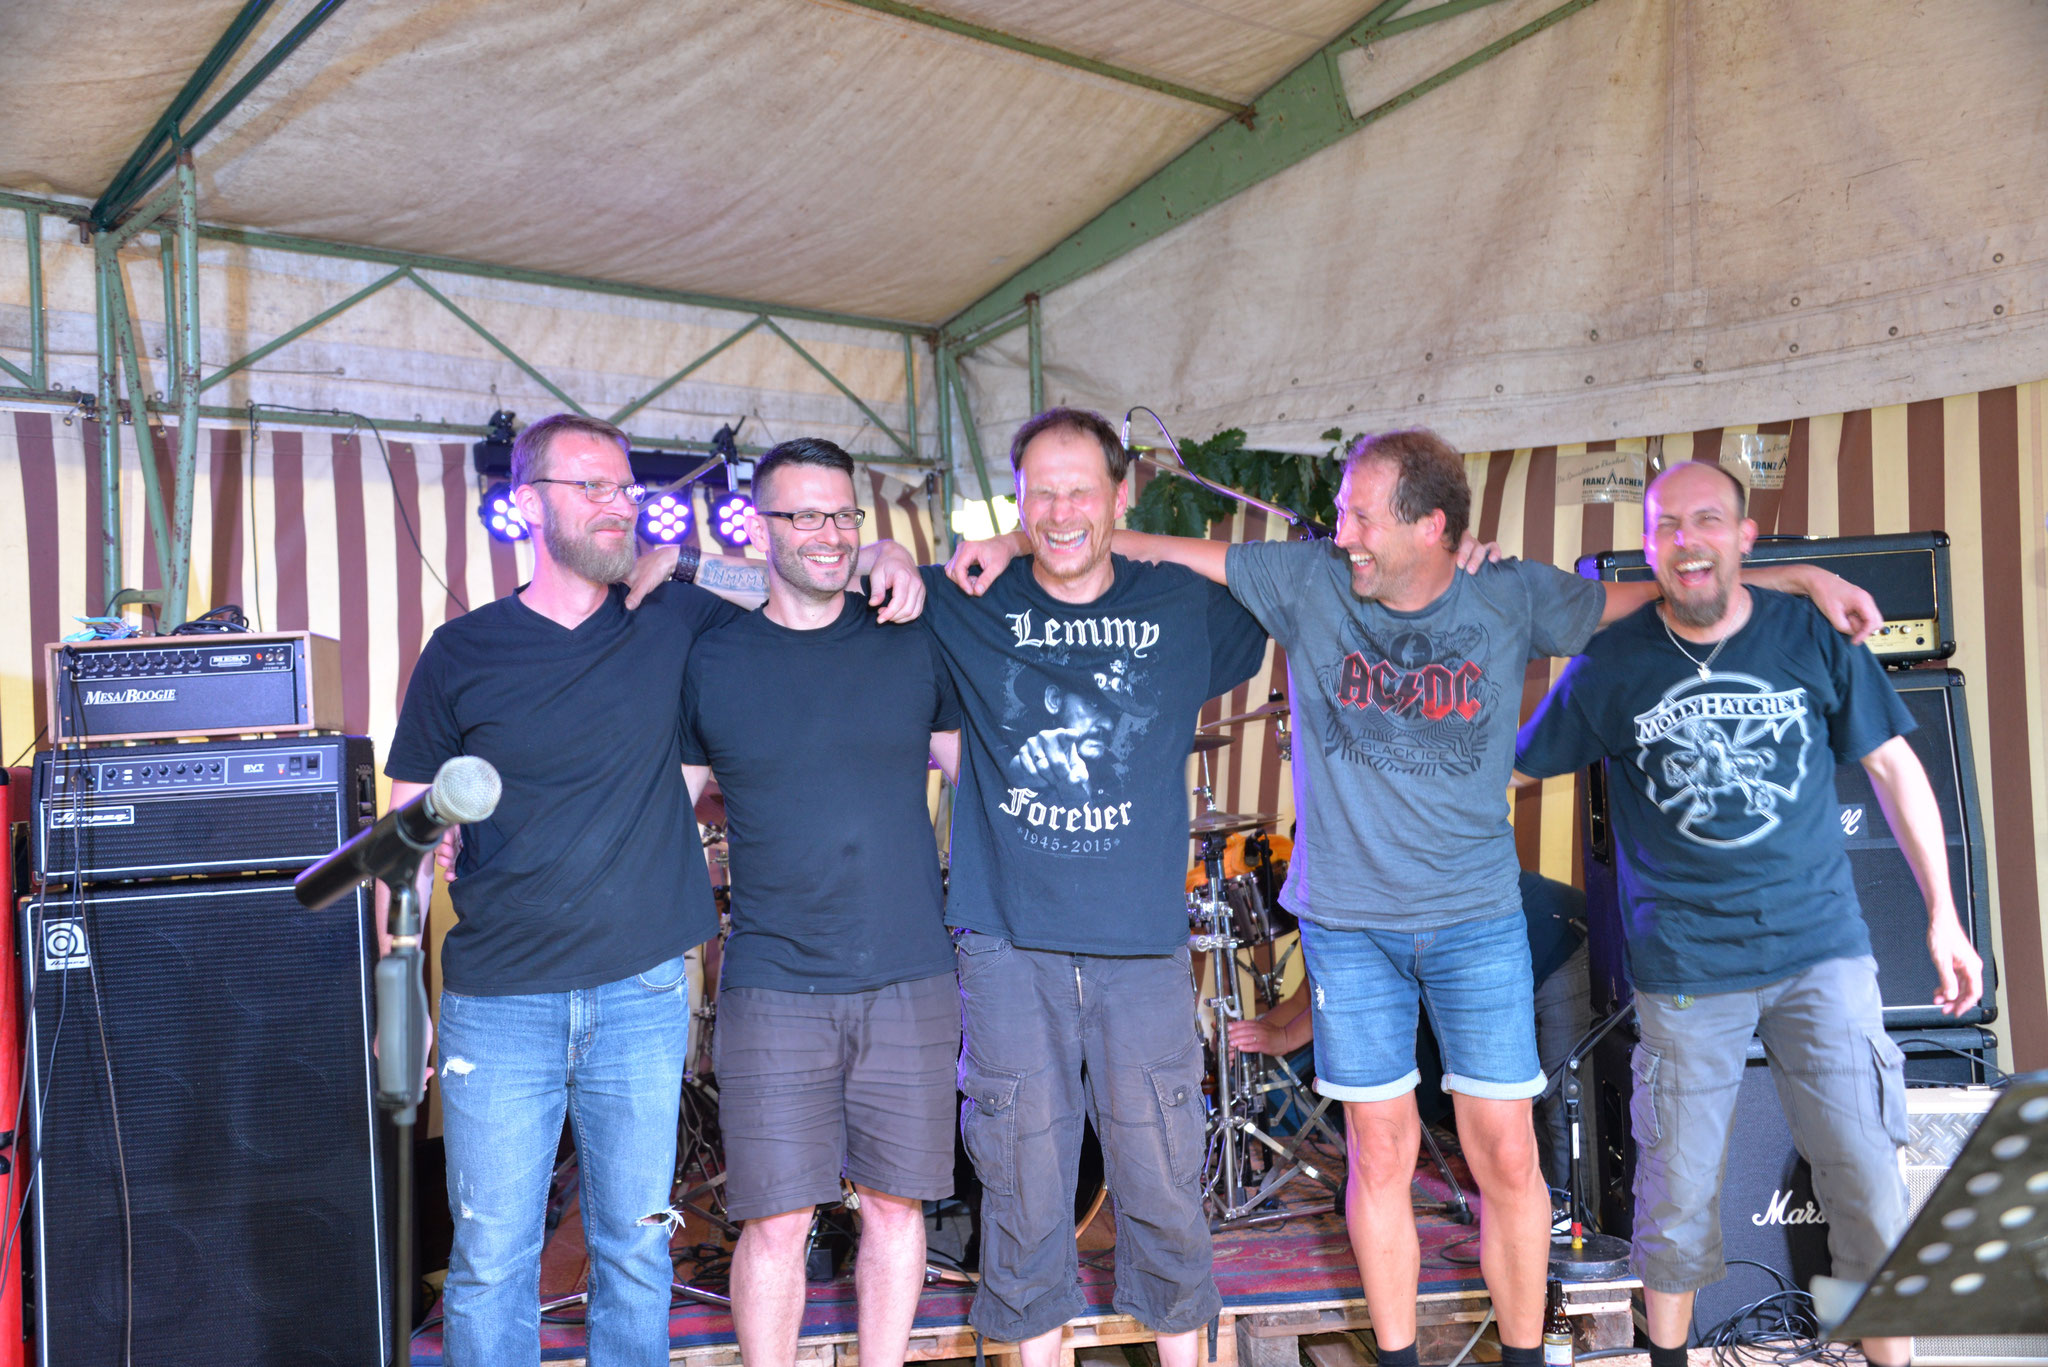 Guardianhill-Windmill-Festival 2017 (Fritzdorf)